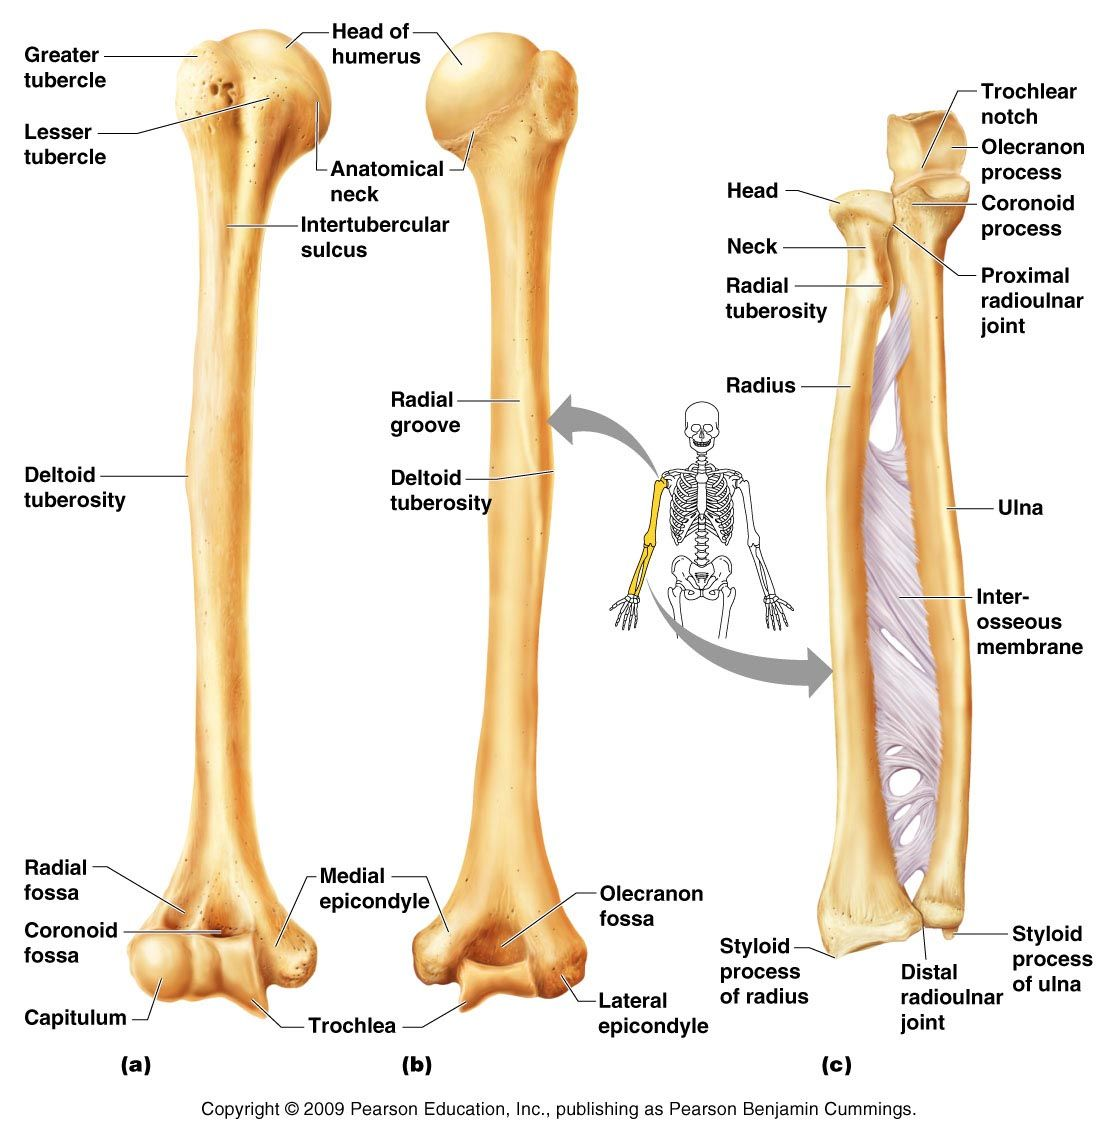 ulna diagram neck - simple wiring diagram